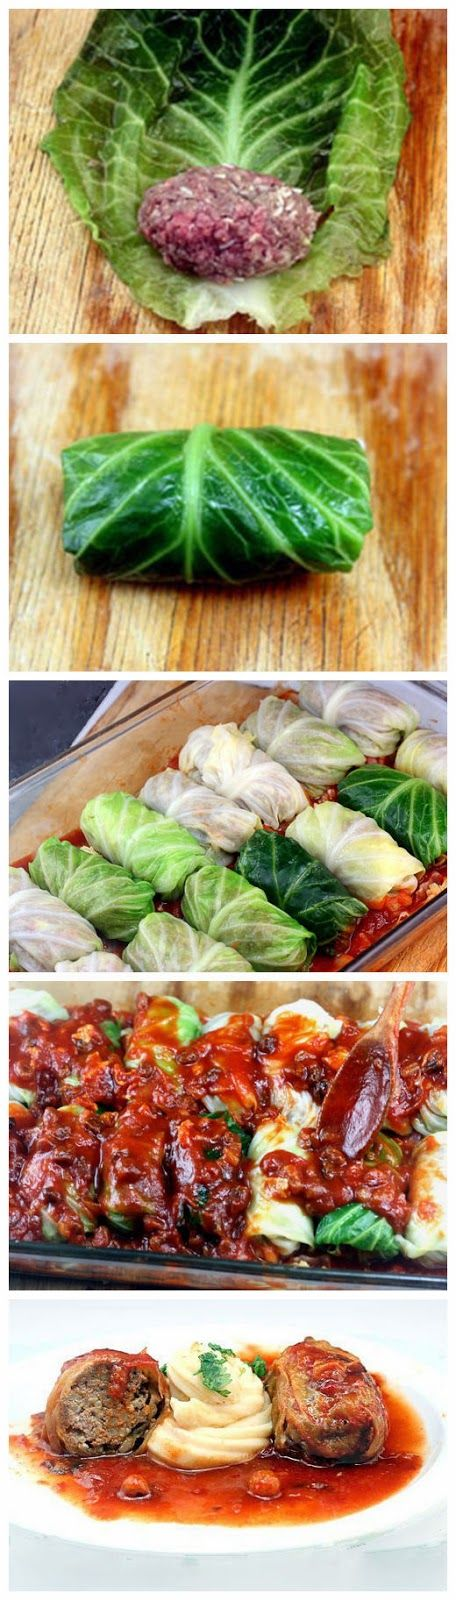 Amazing Stuffed Cabbage Rolls - yummykey